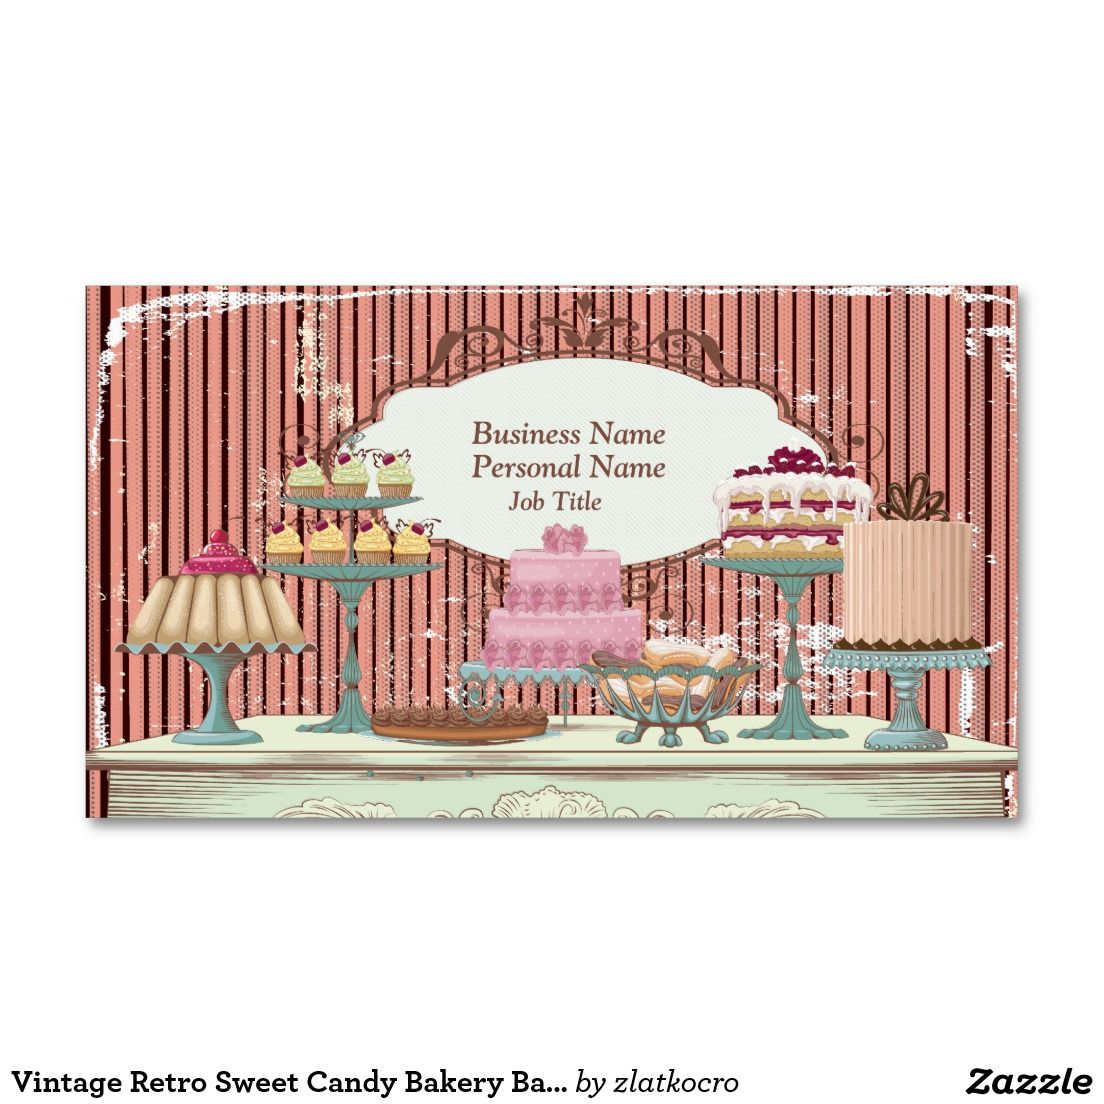 Vintage Retro Sweet Candy Bakery Bar Profile Card Double-Sided ...